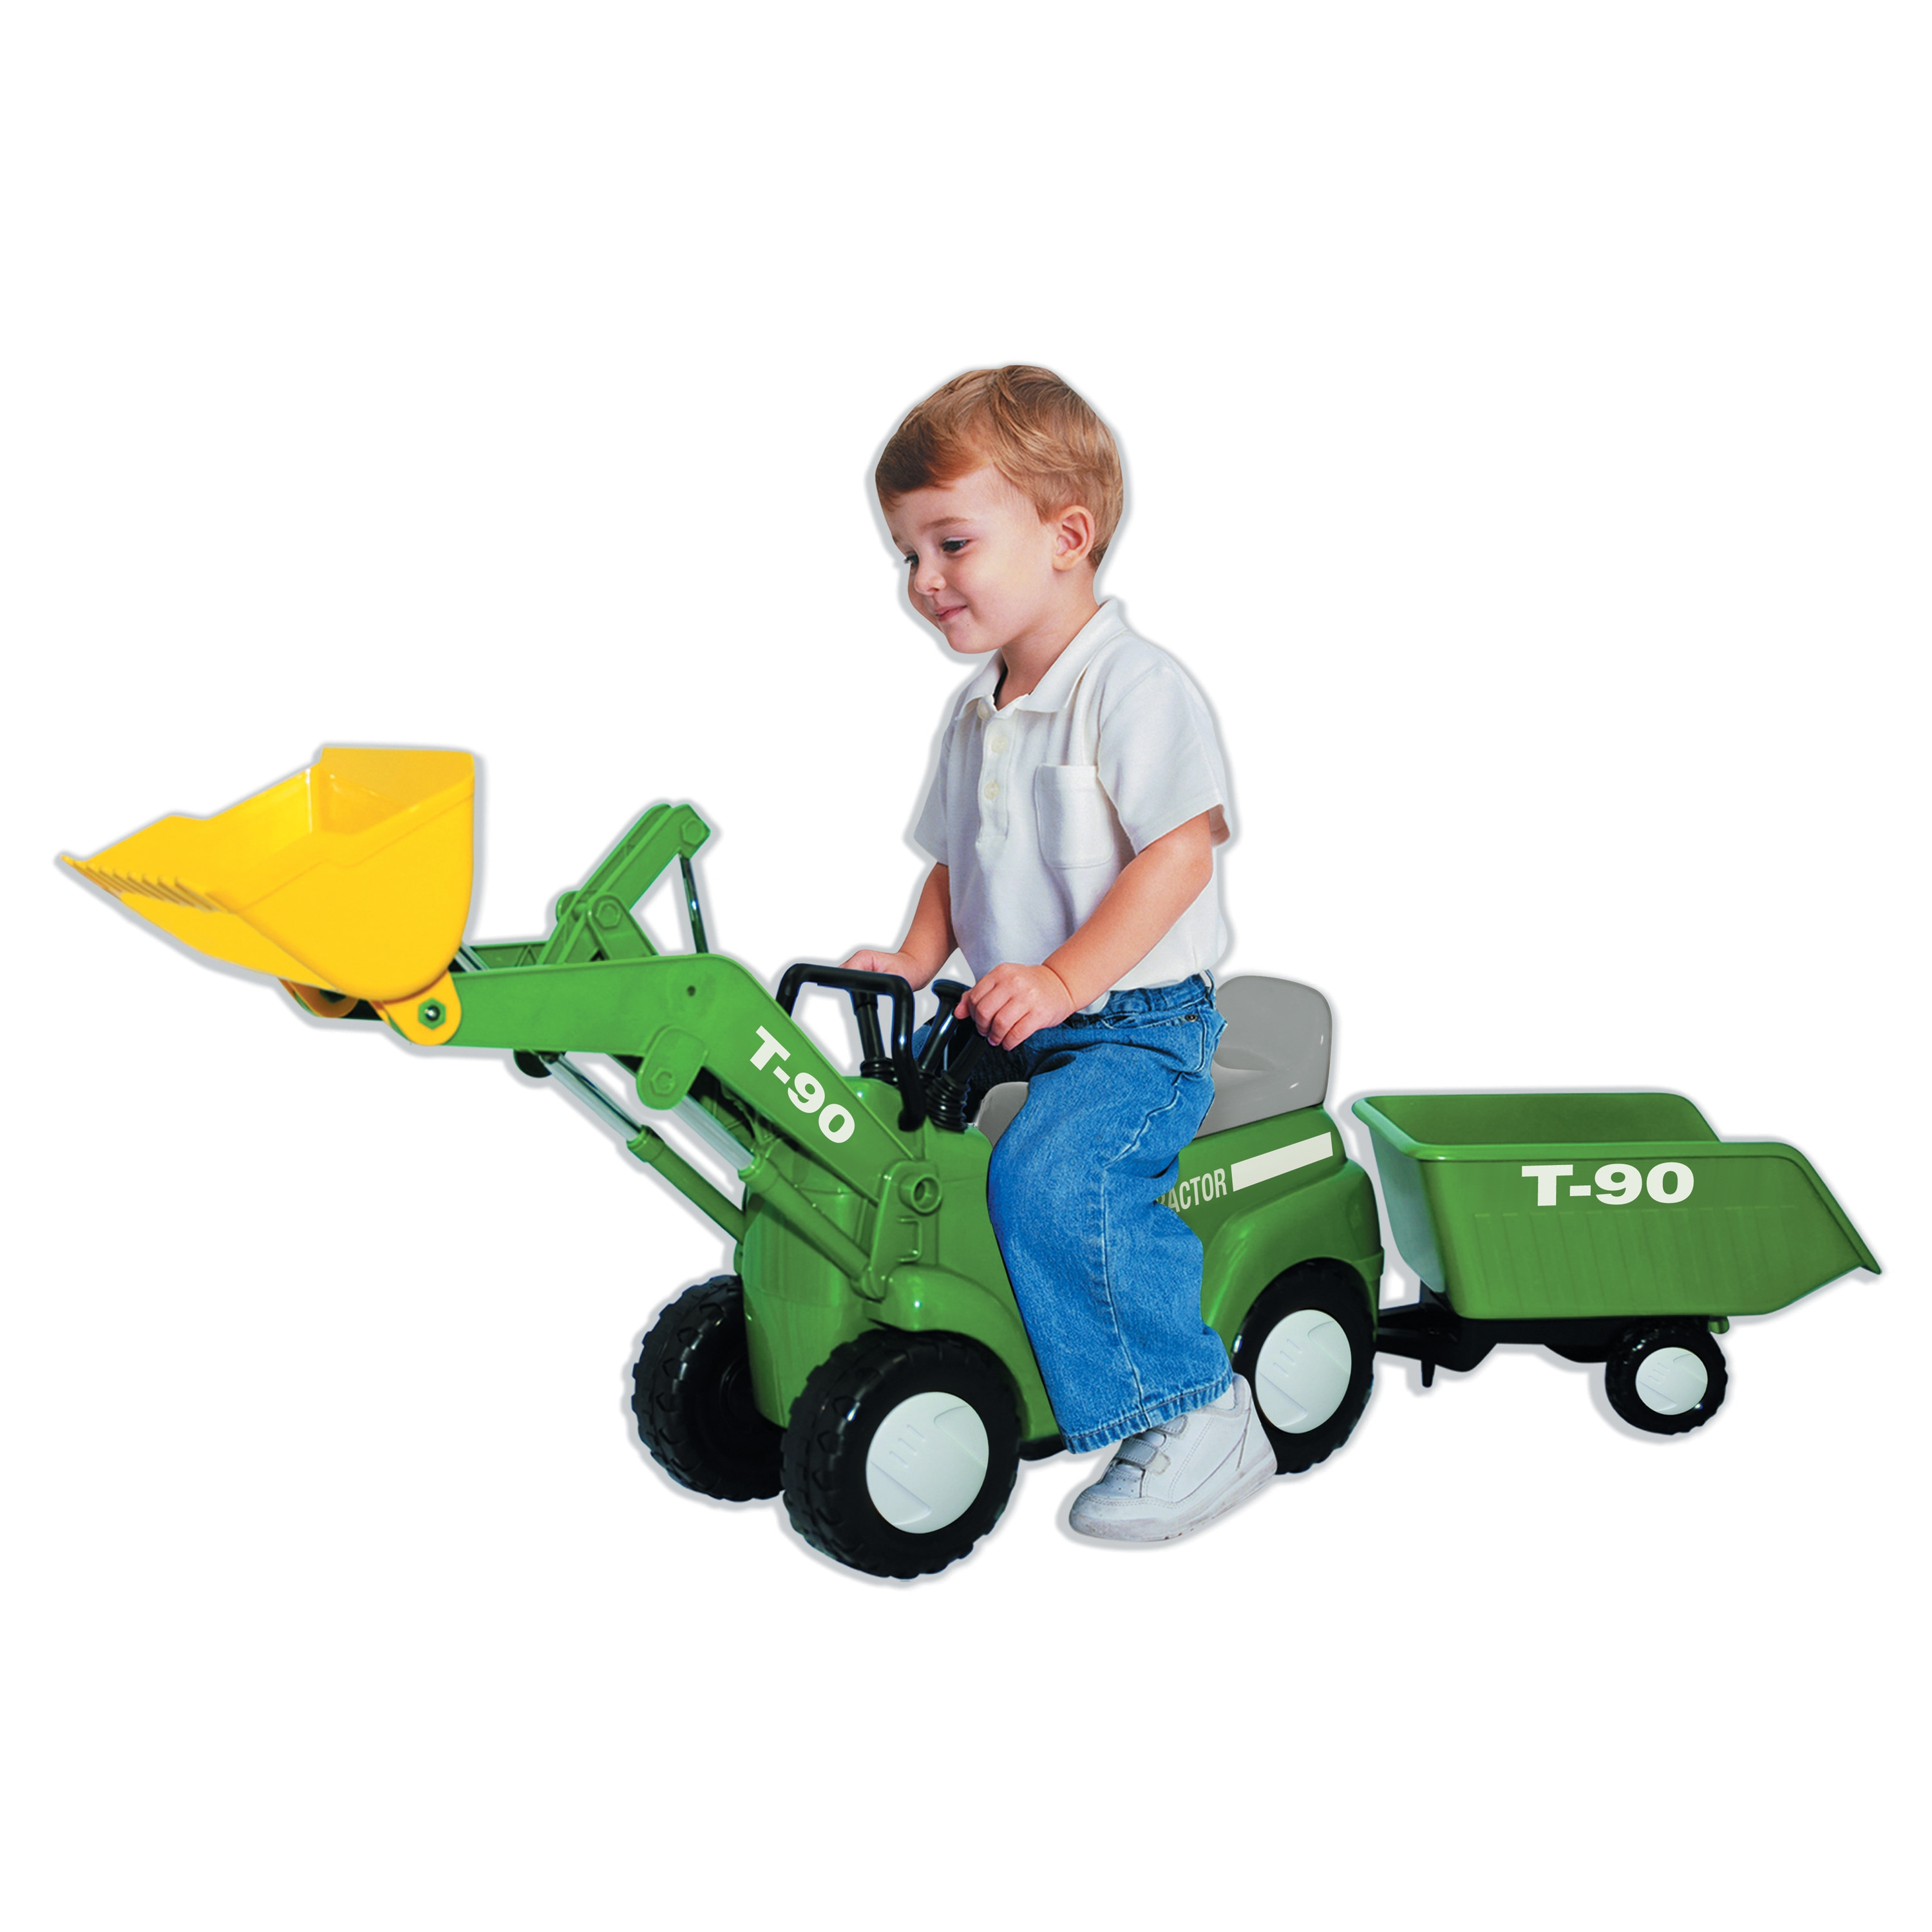 Skyteam Technology Farm Tractor with Big Scoop and Trailer- Ride-On by Overstock